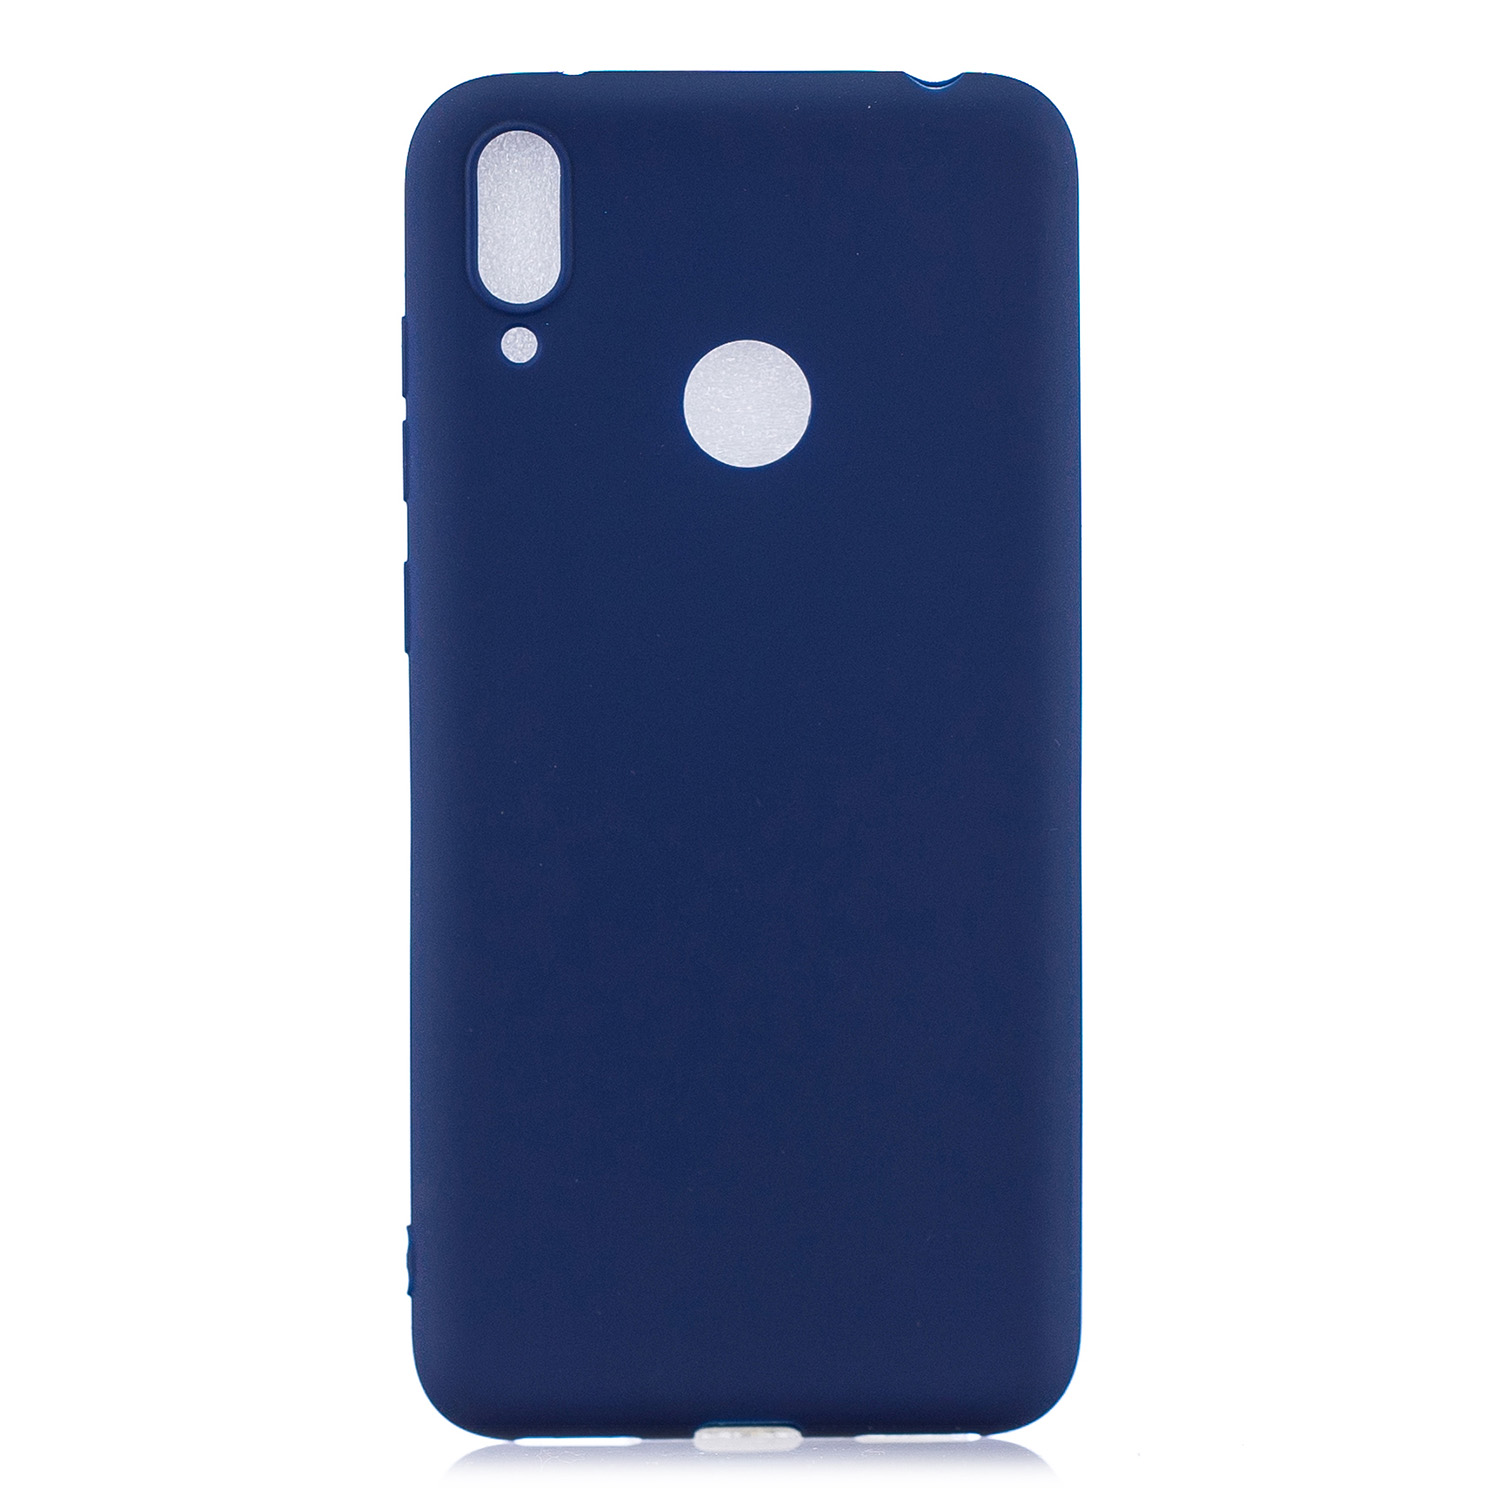 For HUAWEI Y7 2019 Lovely Candy Color Matte TPU Anti-scratch Non-slip Protective Cover Back Case Navy